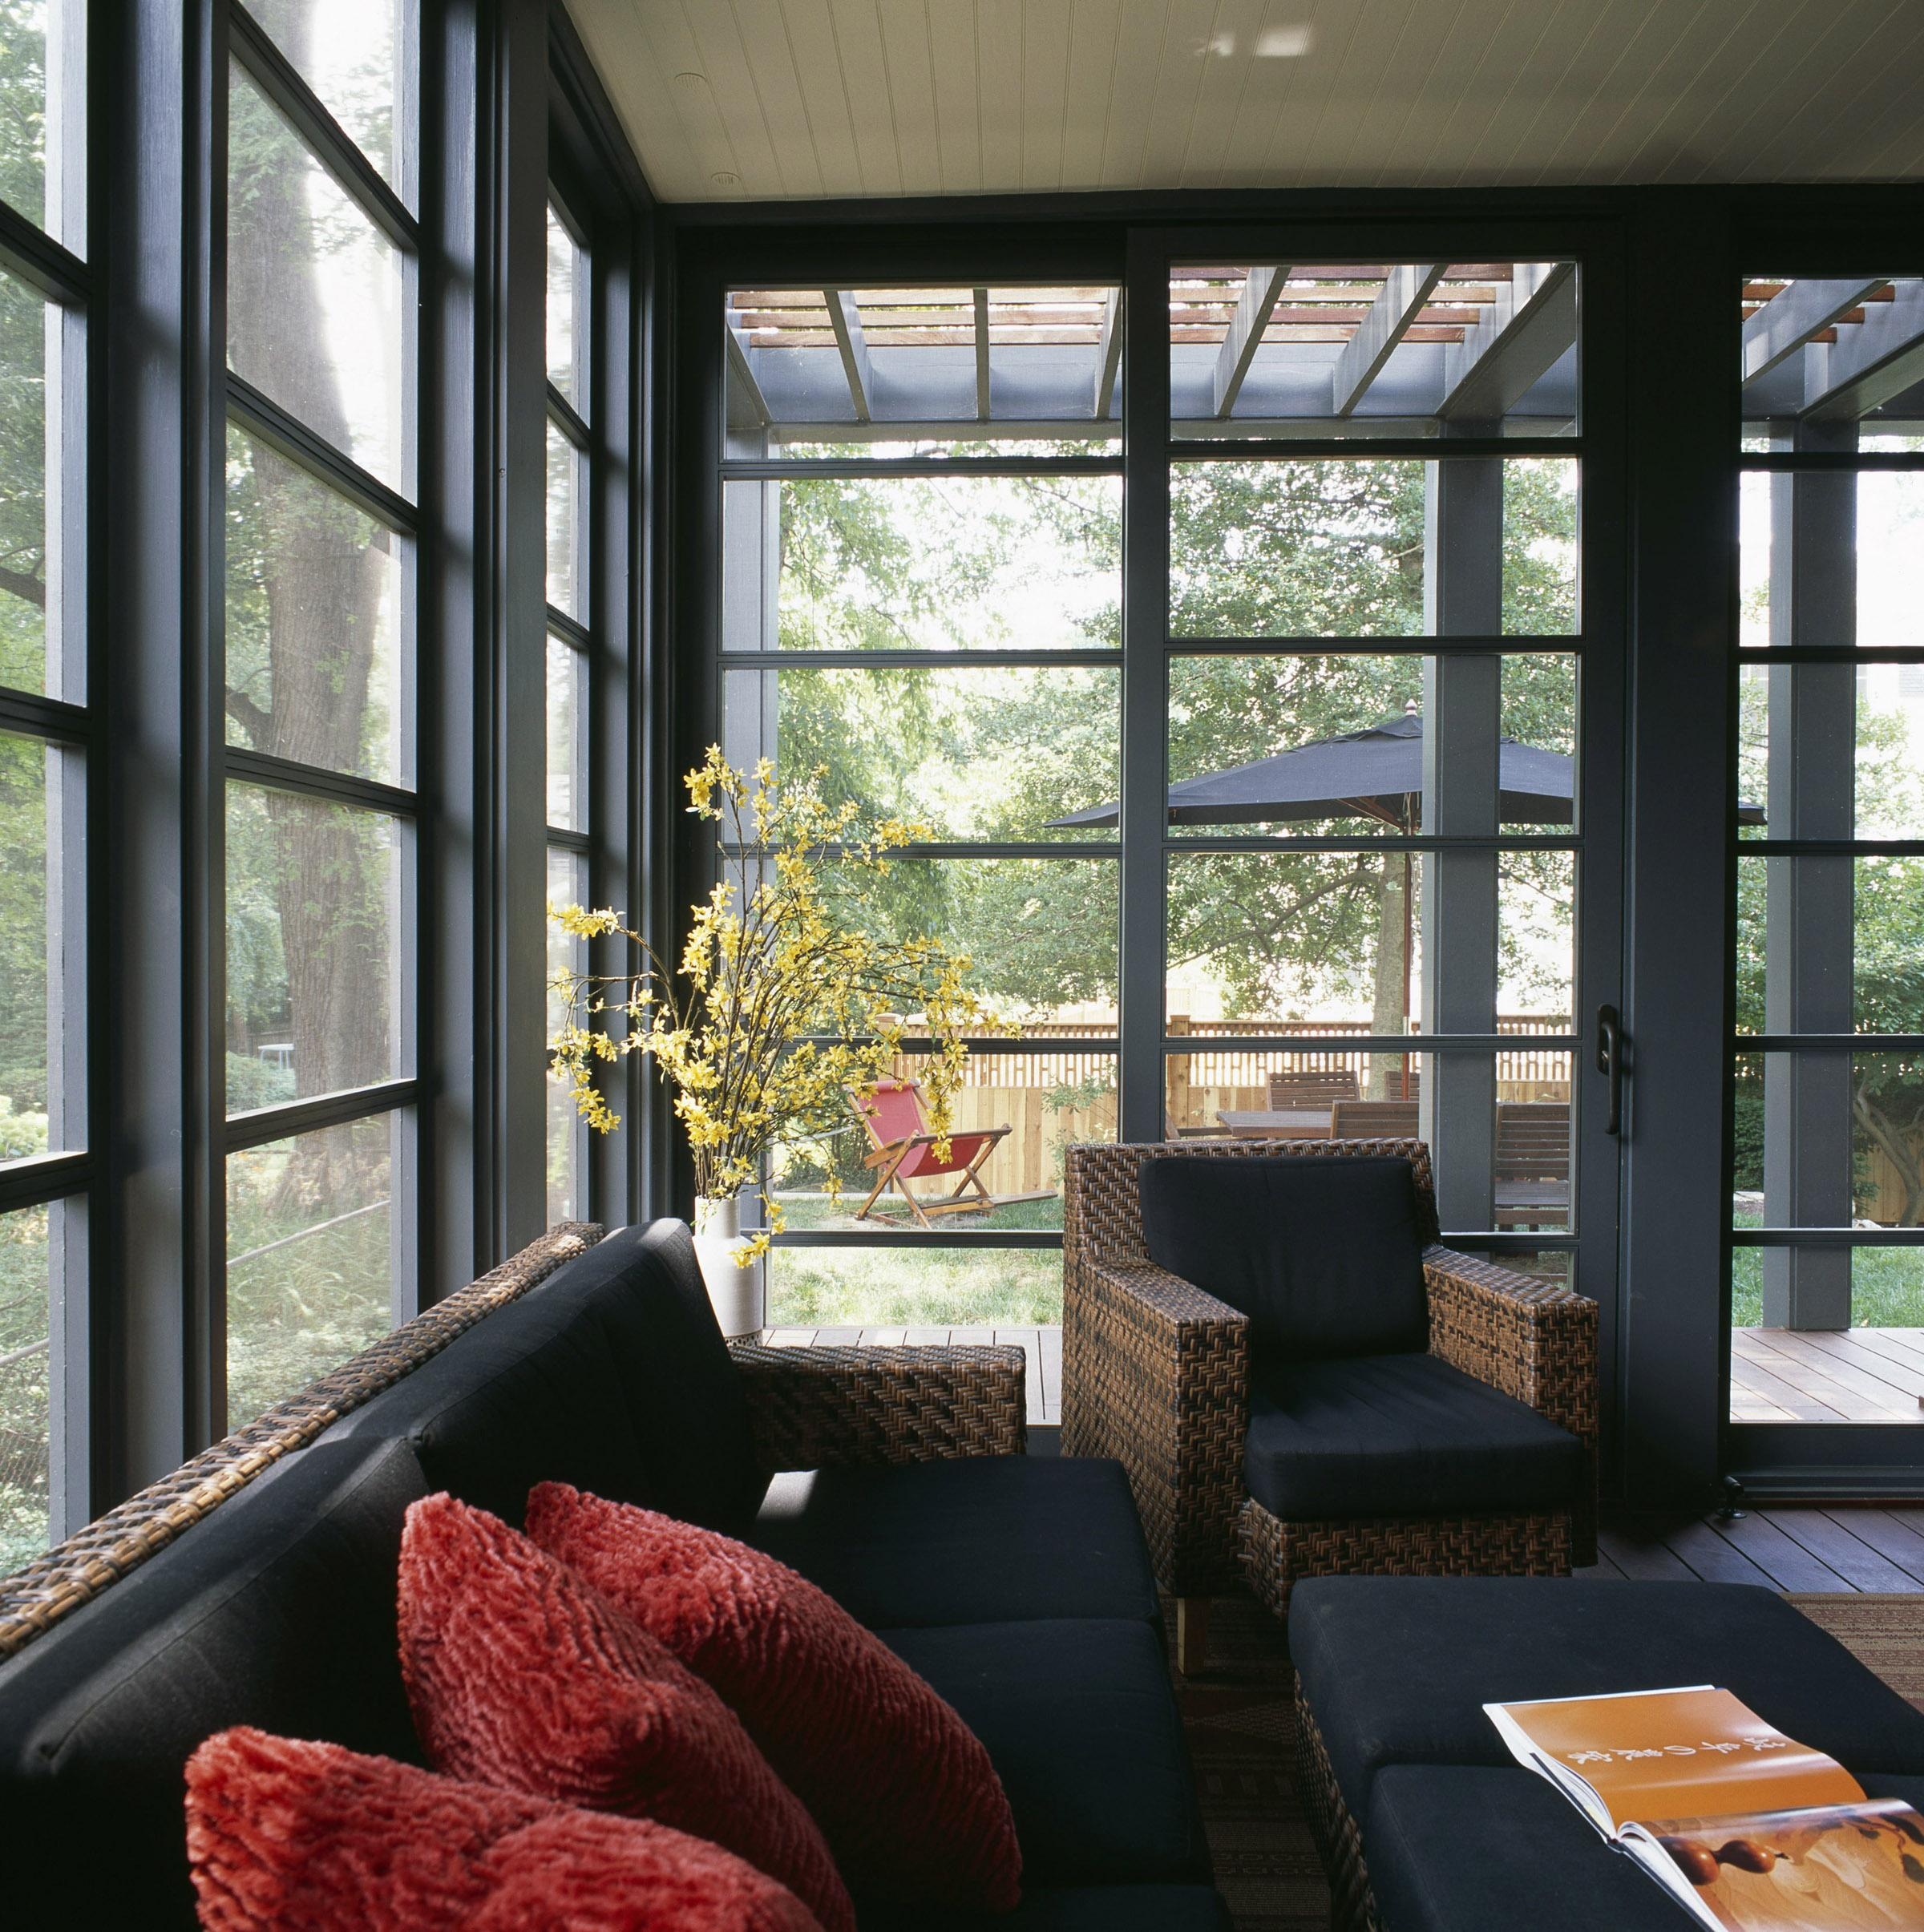 Sustainable design strategies included the reuse of the house as an existing resource; use of salvaged forest products and recycled roofing; careful choices about shading, orientation, and daylighting; high-efficiency lighting and HVAC systems; and attention to indoor air and water quality. (Image: Courtesy Celia Pearson)